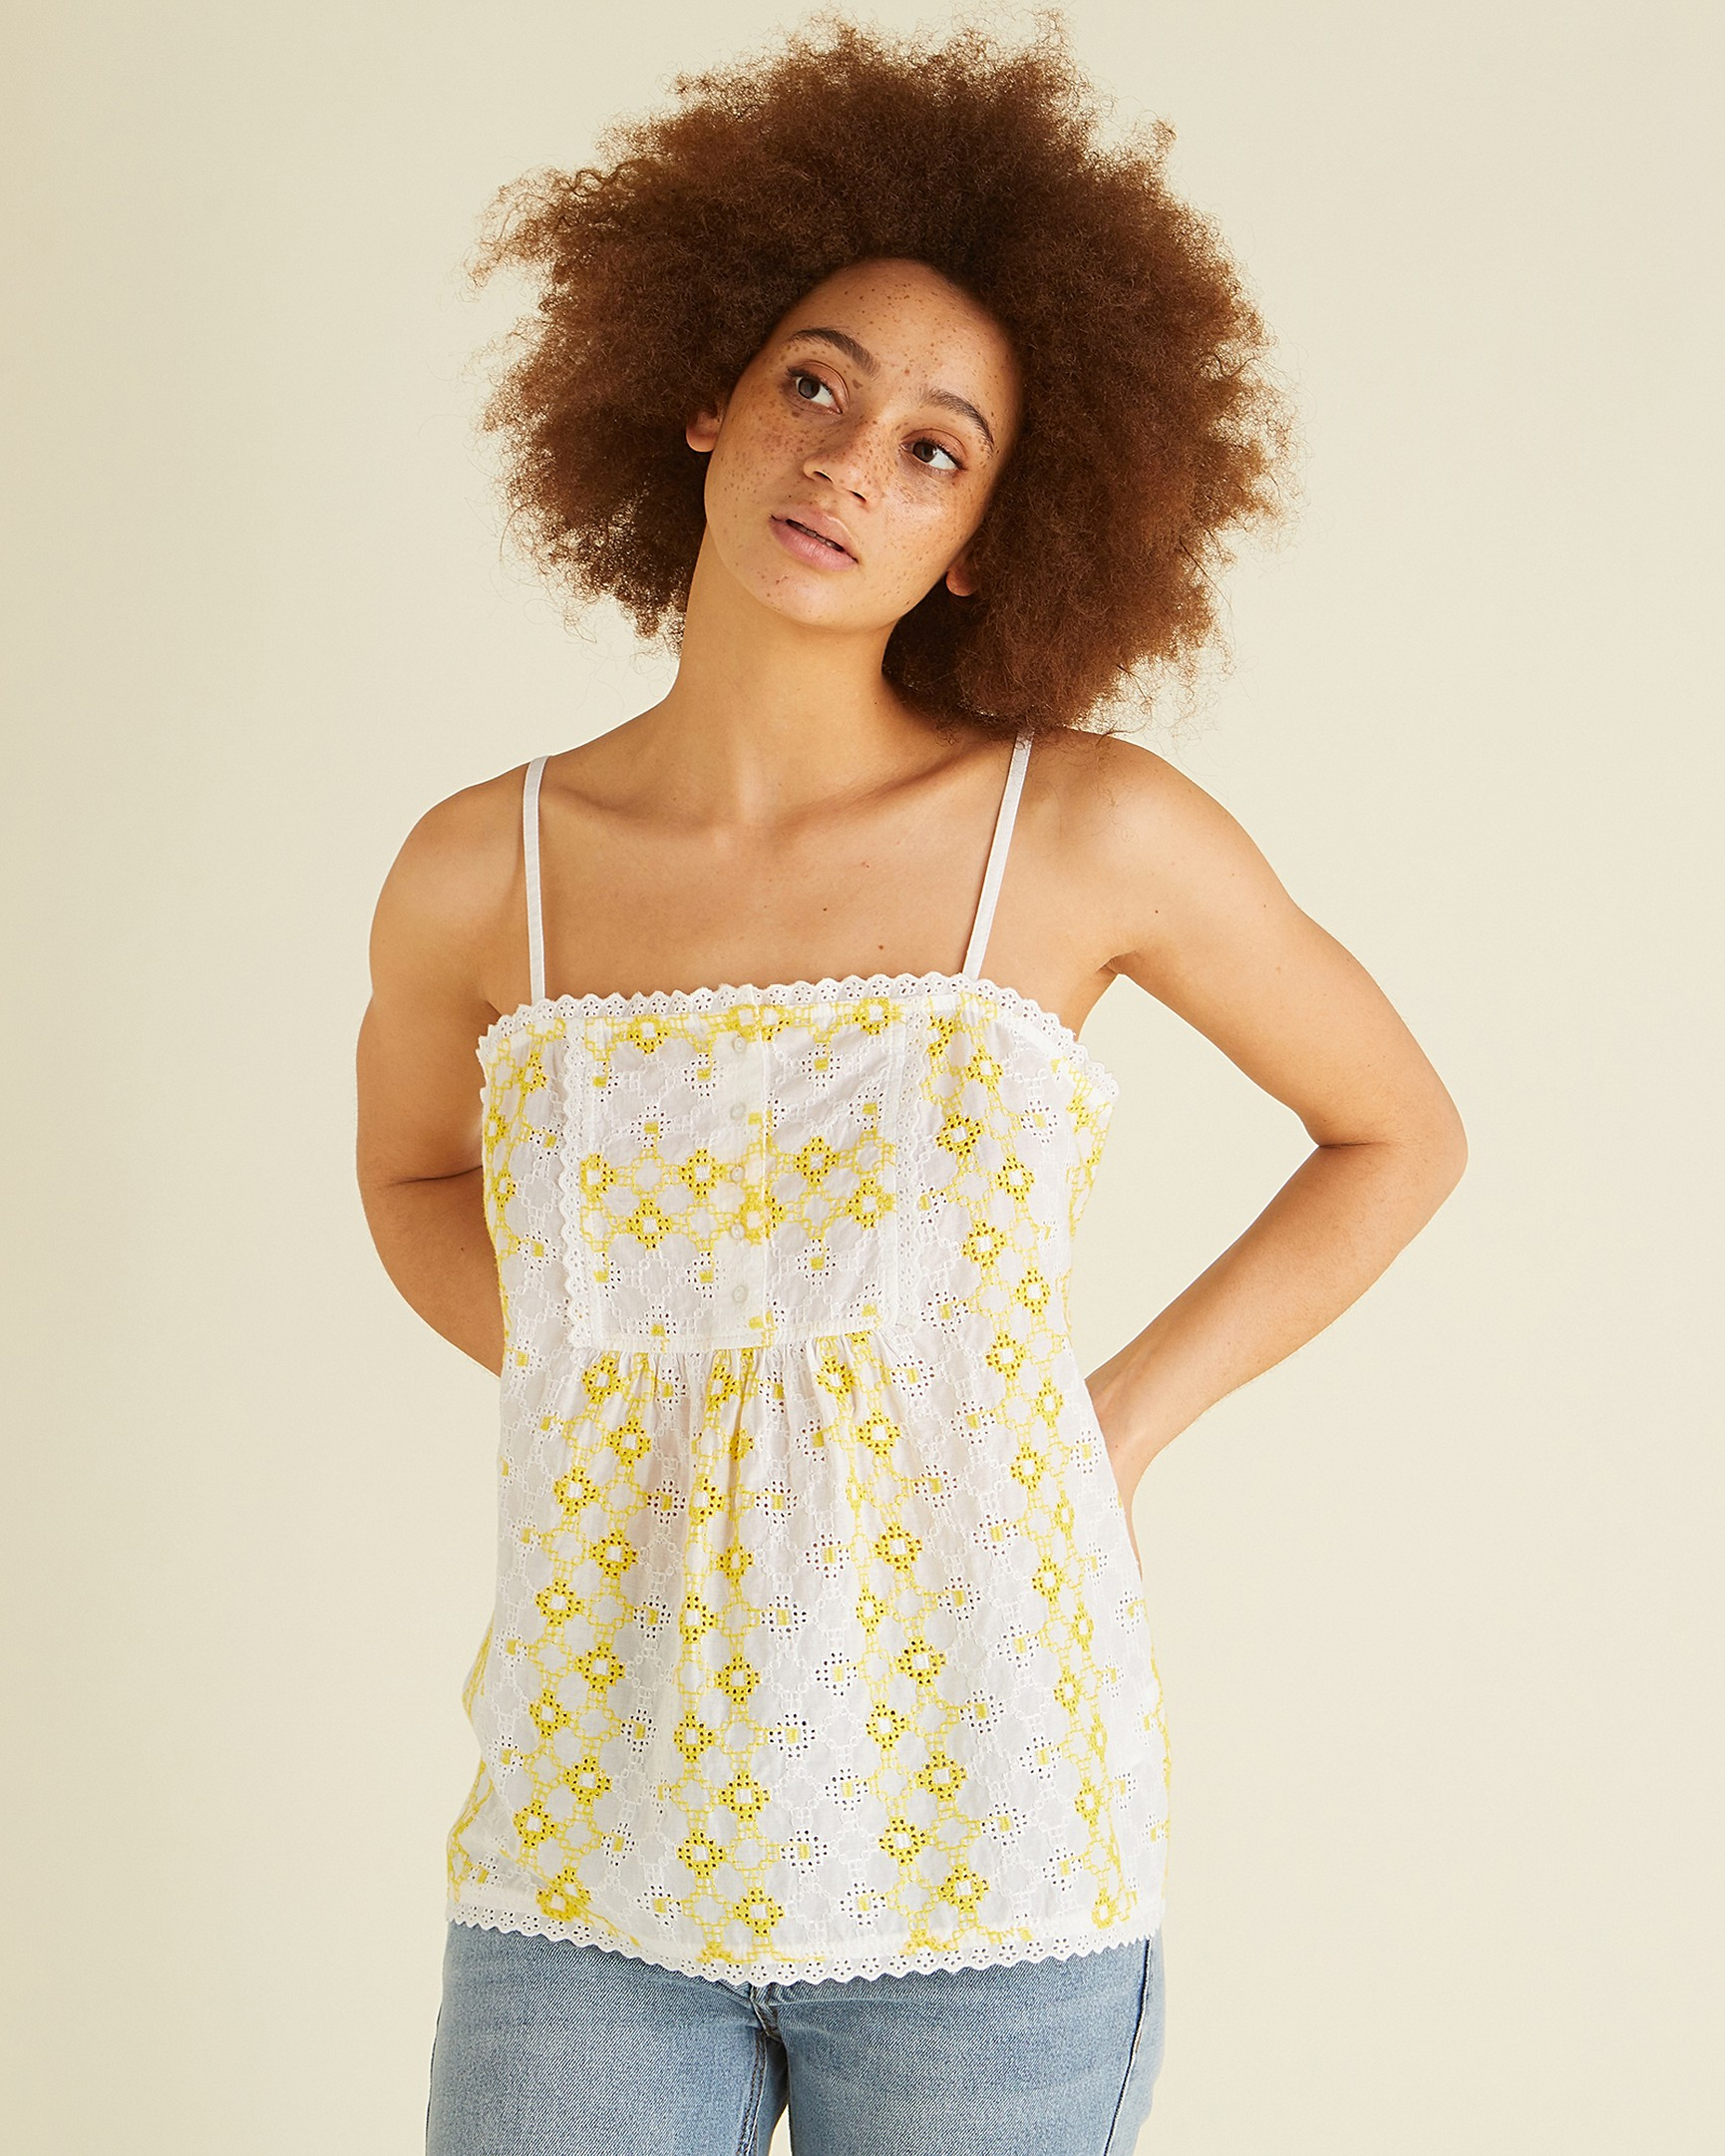 f79b0c7dc9872 Embroidered White   Yellow Cami Top